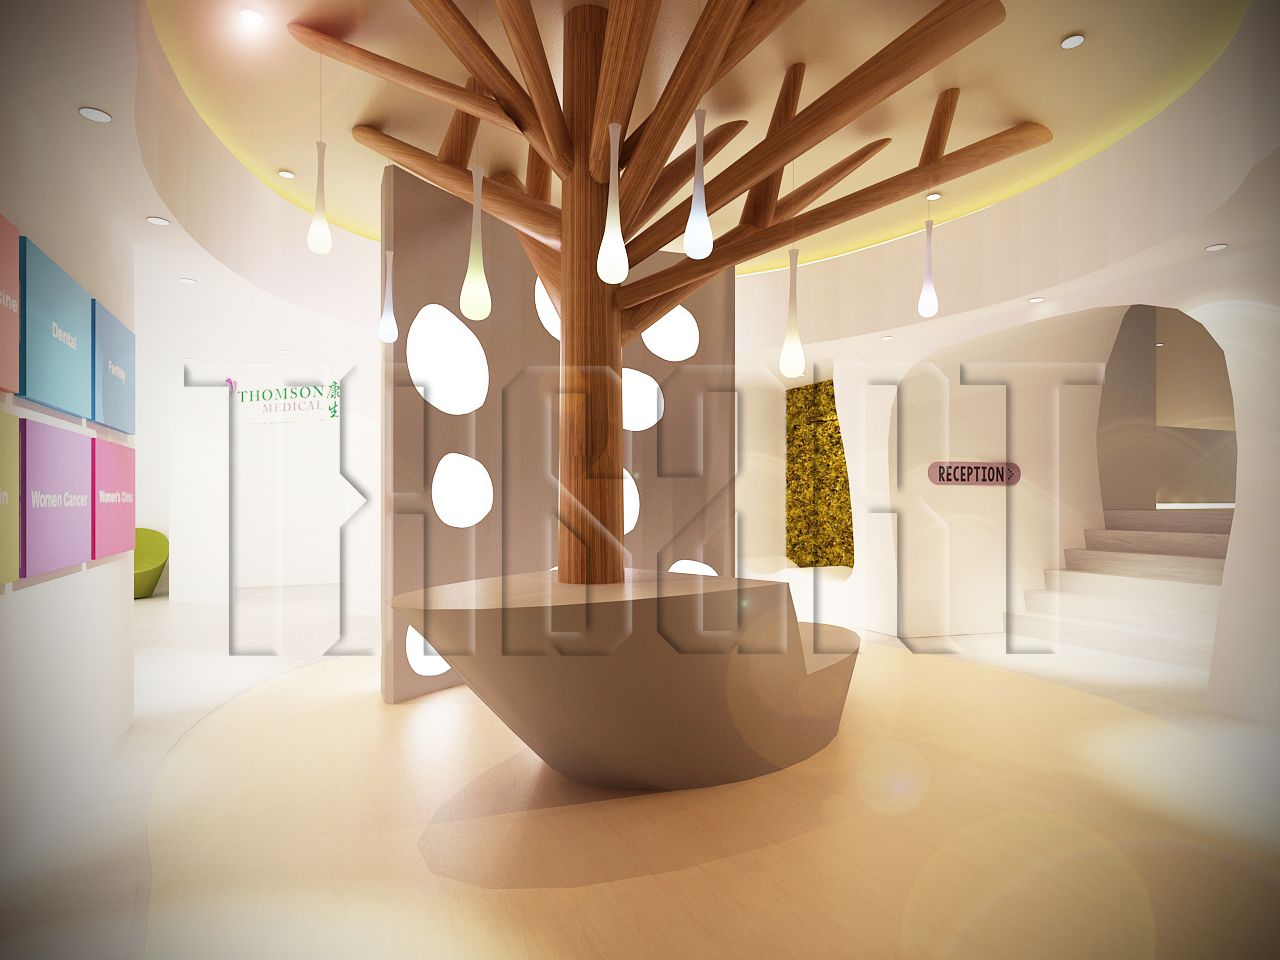 Reception a maternity hospital with a whimsical interior for Interior design process